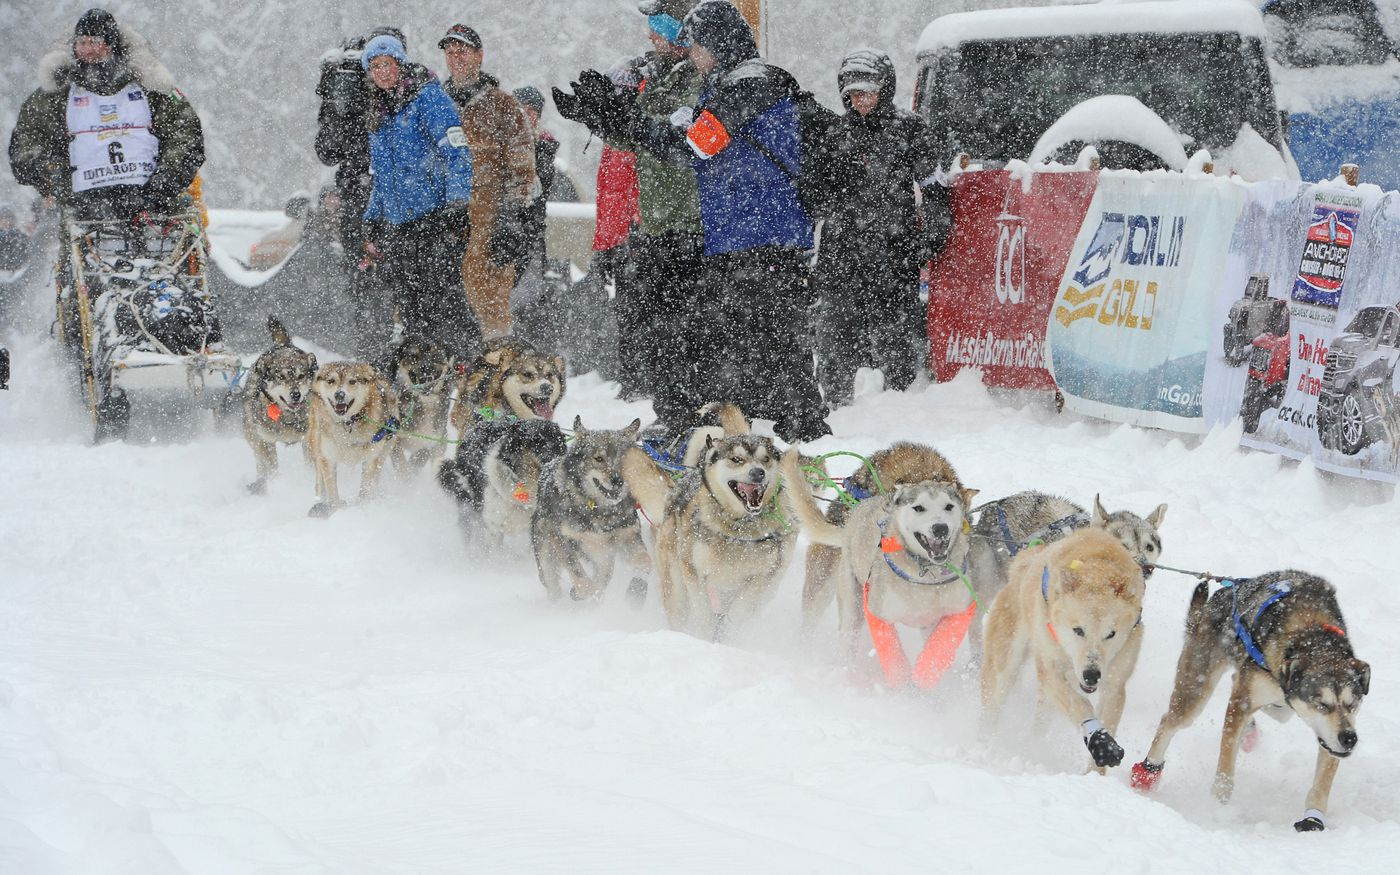 Iditarod rookie Fabio Berlusconi of Italy drives his dog team during the restart of the Iditarod Trail Sled Dog Race in Willow on Sunday, March 8, 2020. (Bill Roth / ADN)